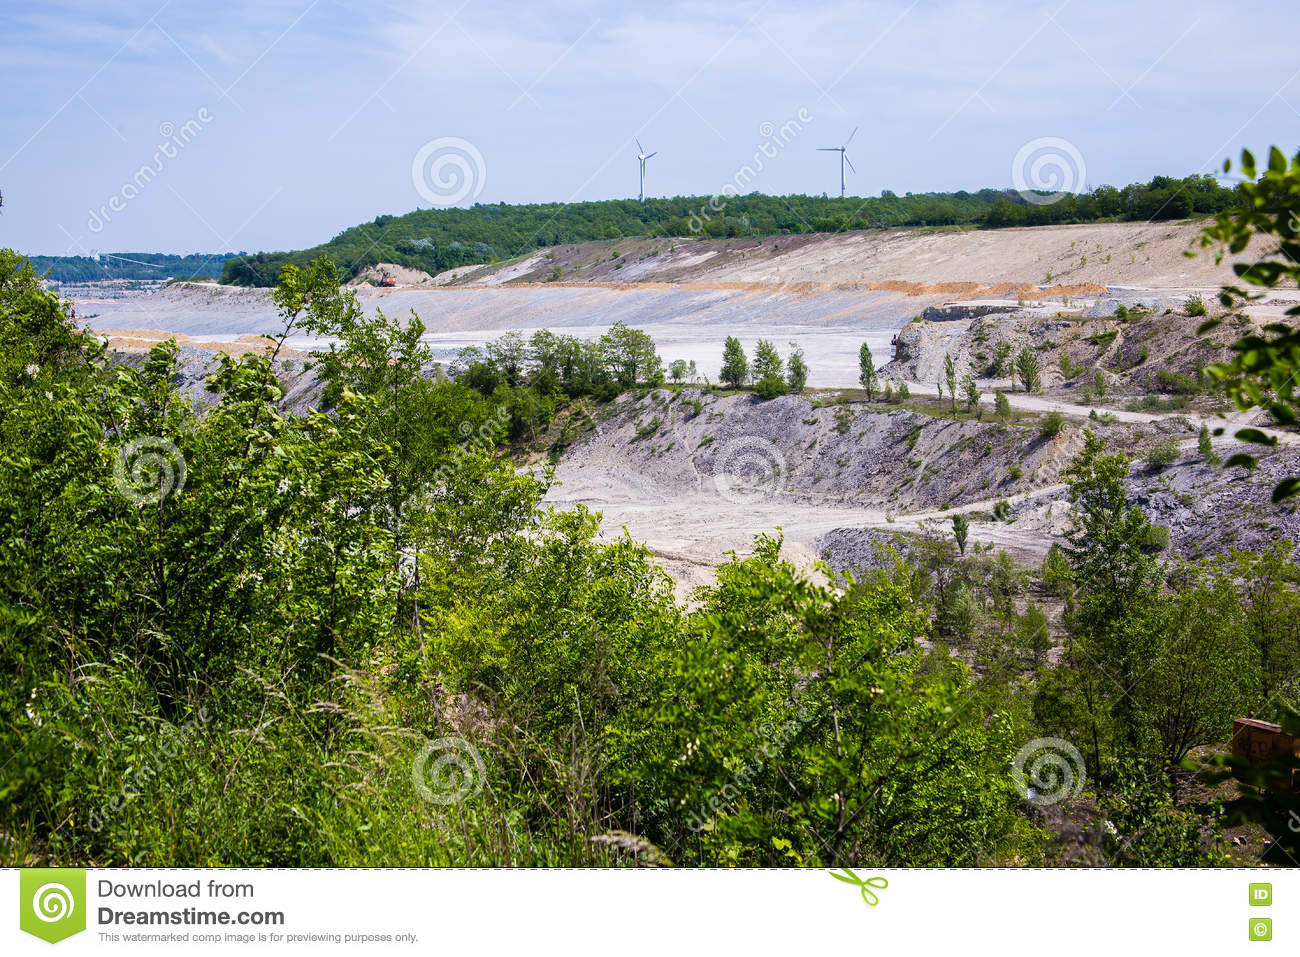 Download LIMESTONE MINING Cement stock image. Image of cement - 73223903